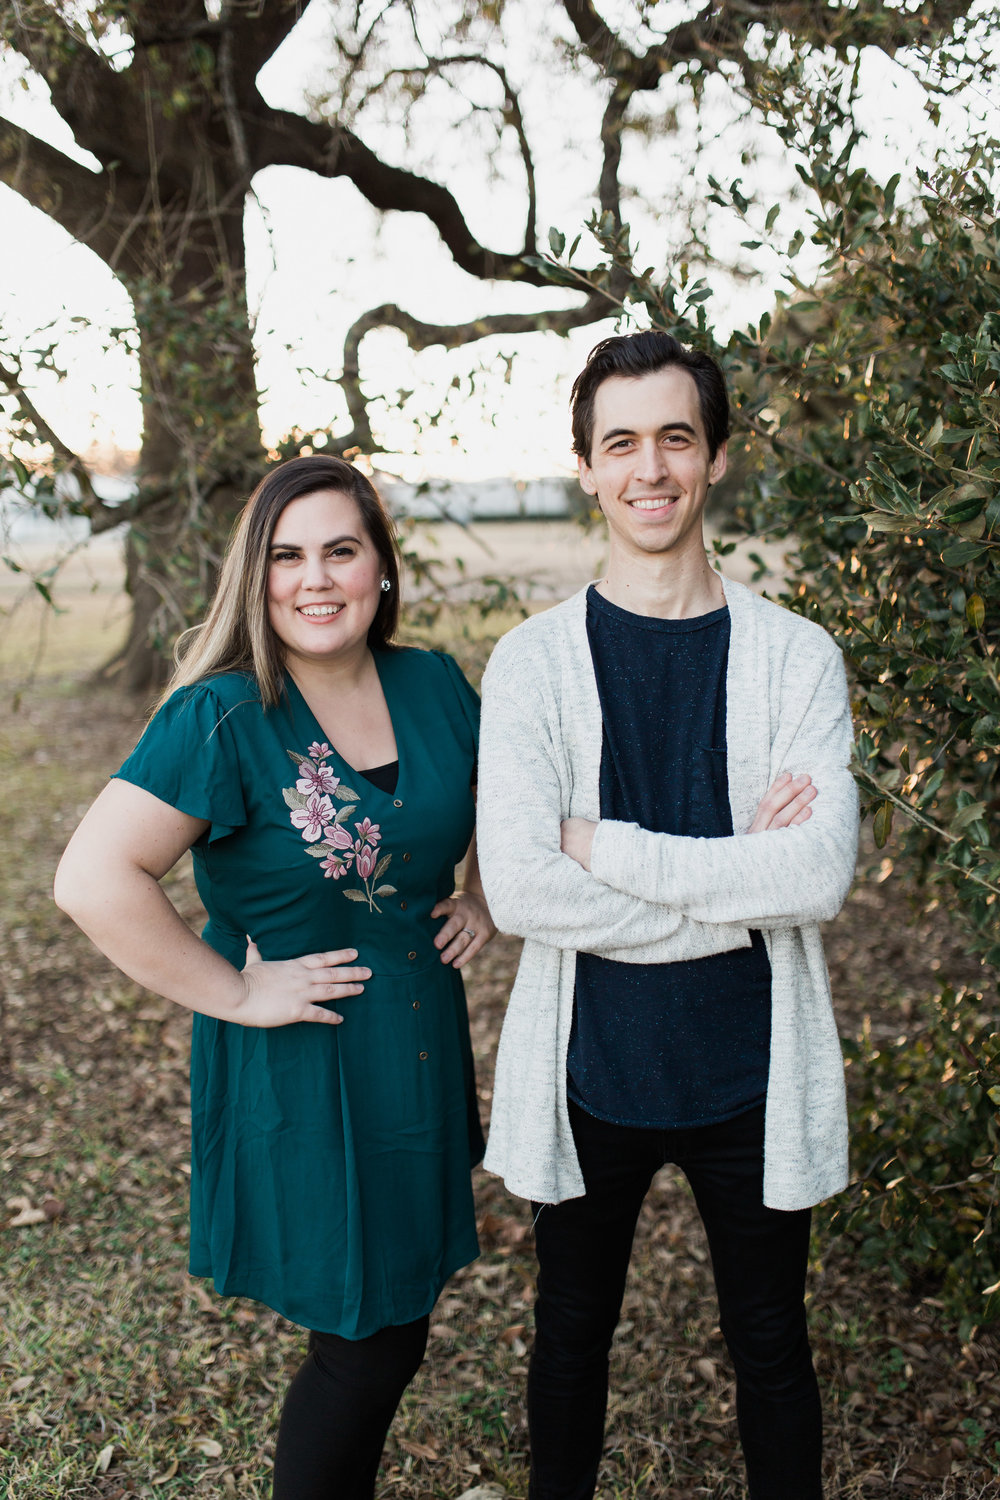 meet our pastors - Andrew Wilson and his wife Caitlyn, serve as the Lead Pastors of Trinity in Beaumont, Texas. In addition to pastoring they run a wedding and portrait photography business and YouTube in their spare time.Caitlyn and Andrew attended Rhema Bible College between 2008 to 2012. They first met through mutual friends in Tulsa, were married in 2012, and moved to Texas to step into the Youth Pastor position here at Trinity. This was all leading up to the next thing that God had for them. At the end of 2016 they stepped into the legacy that founding Pastors' Howard and Marilyn Cameron left and became lead pastors. Andrew and Caitlyn are firm believers in community and having healthy friendships. We aren't meant to do life alone! Here at Trinity there is always room for one more in God's family and that means that the family is always growing and increasing in life-giving friendships.